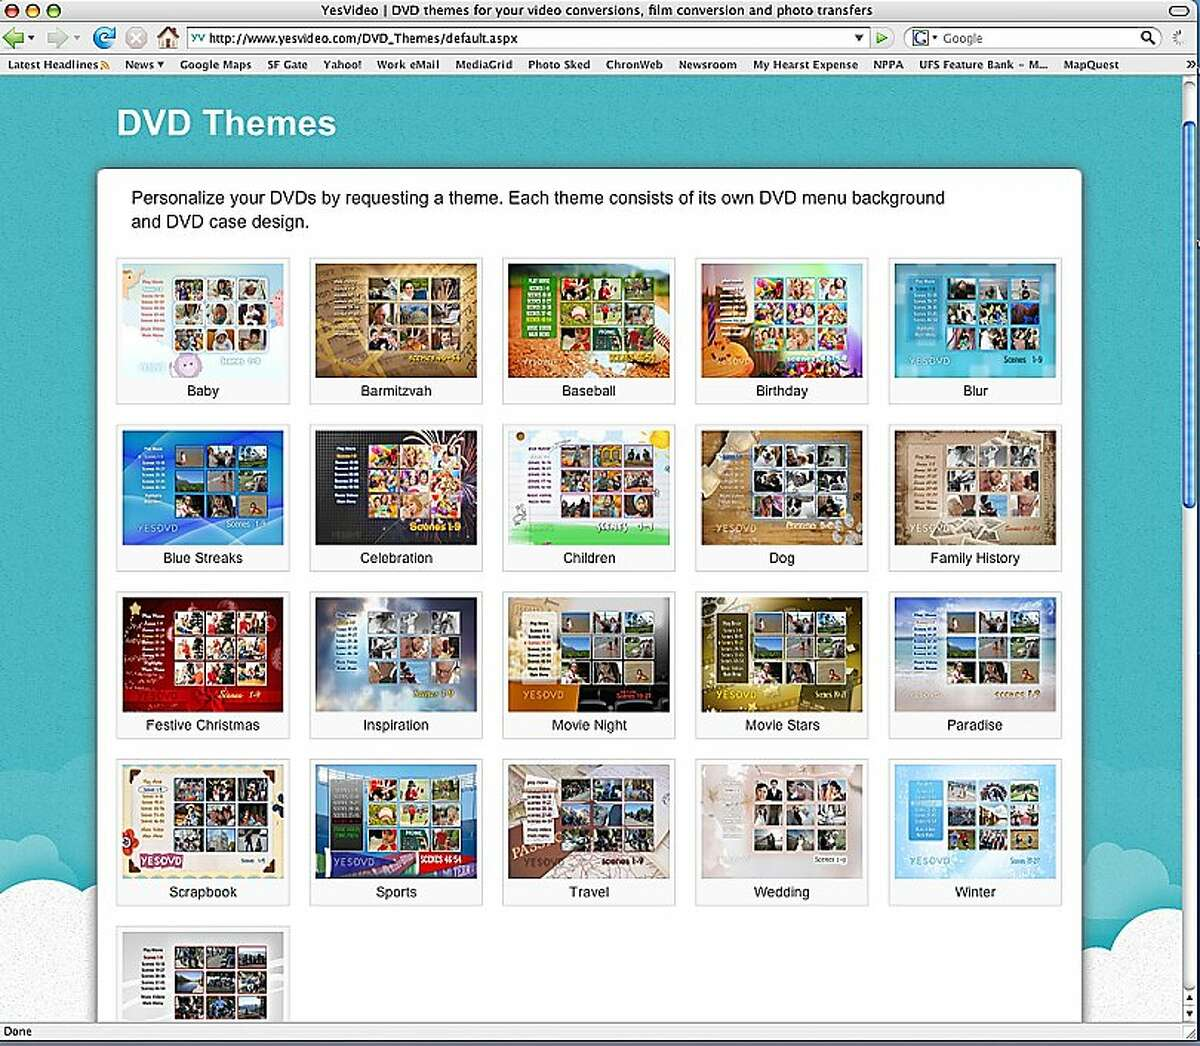 YesVideo will personalize images into a themed DVD. Each theme has its own DVD menu background and DVD case design.